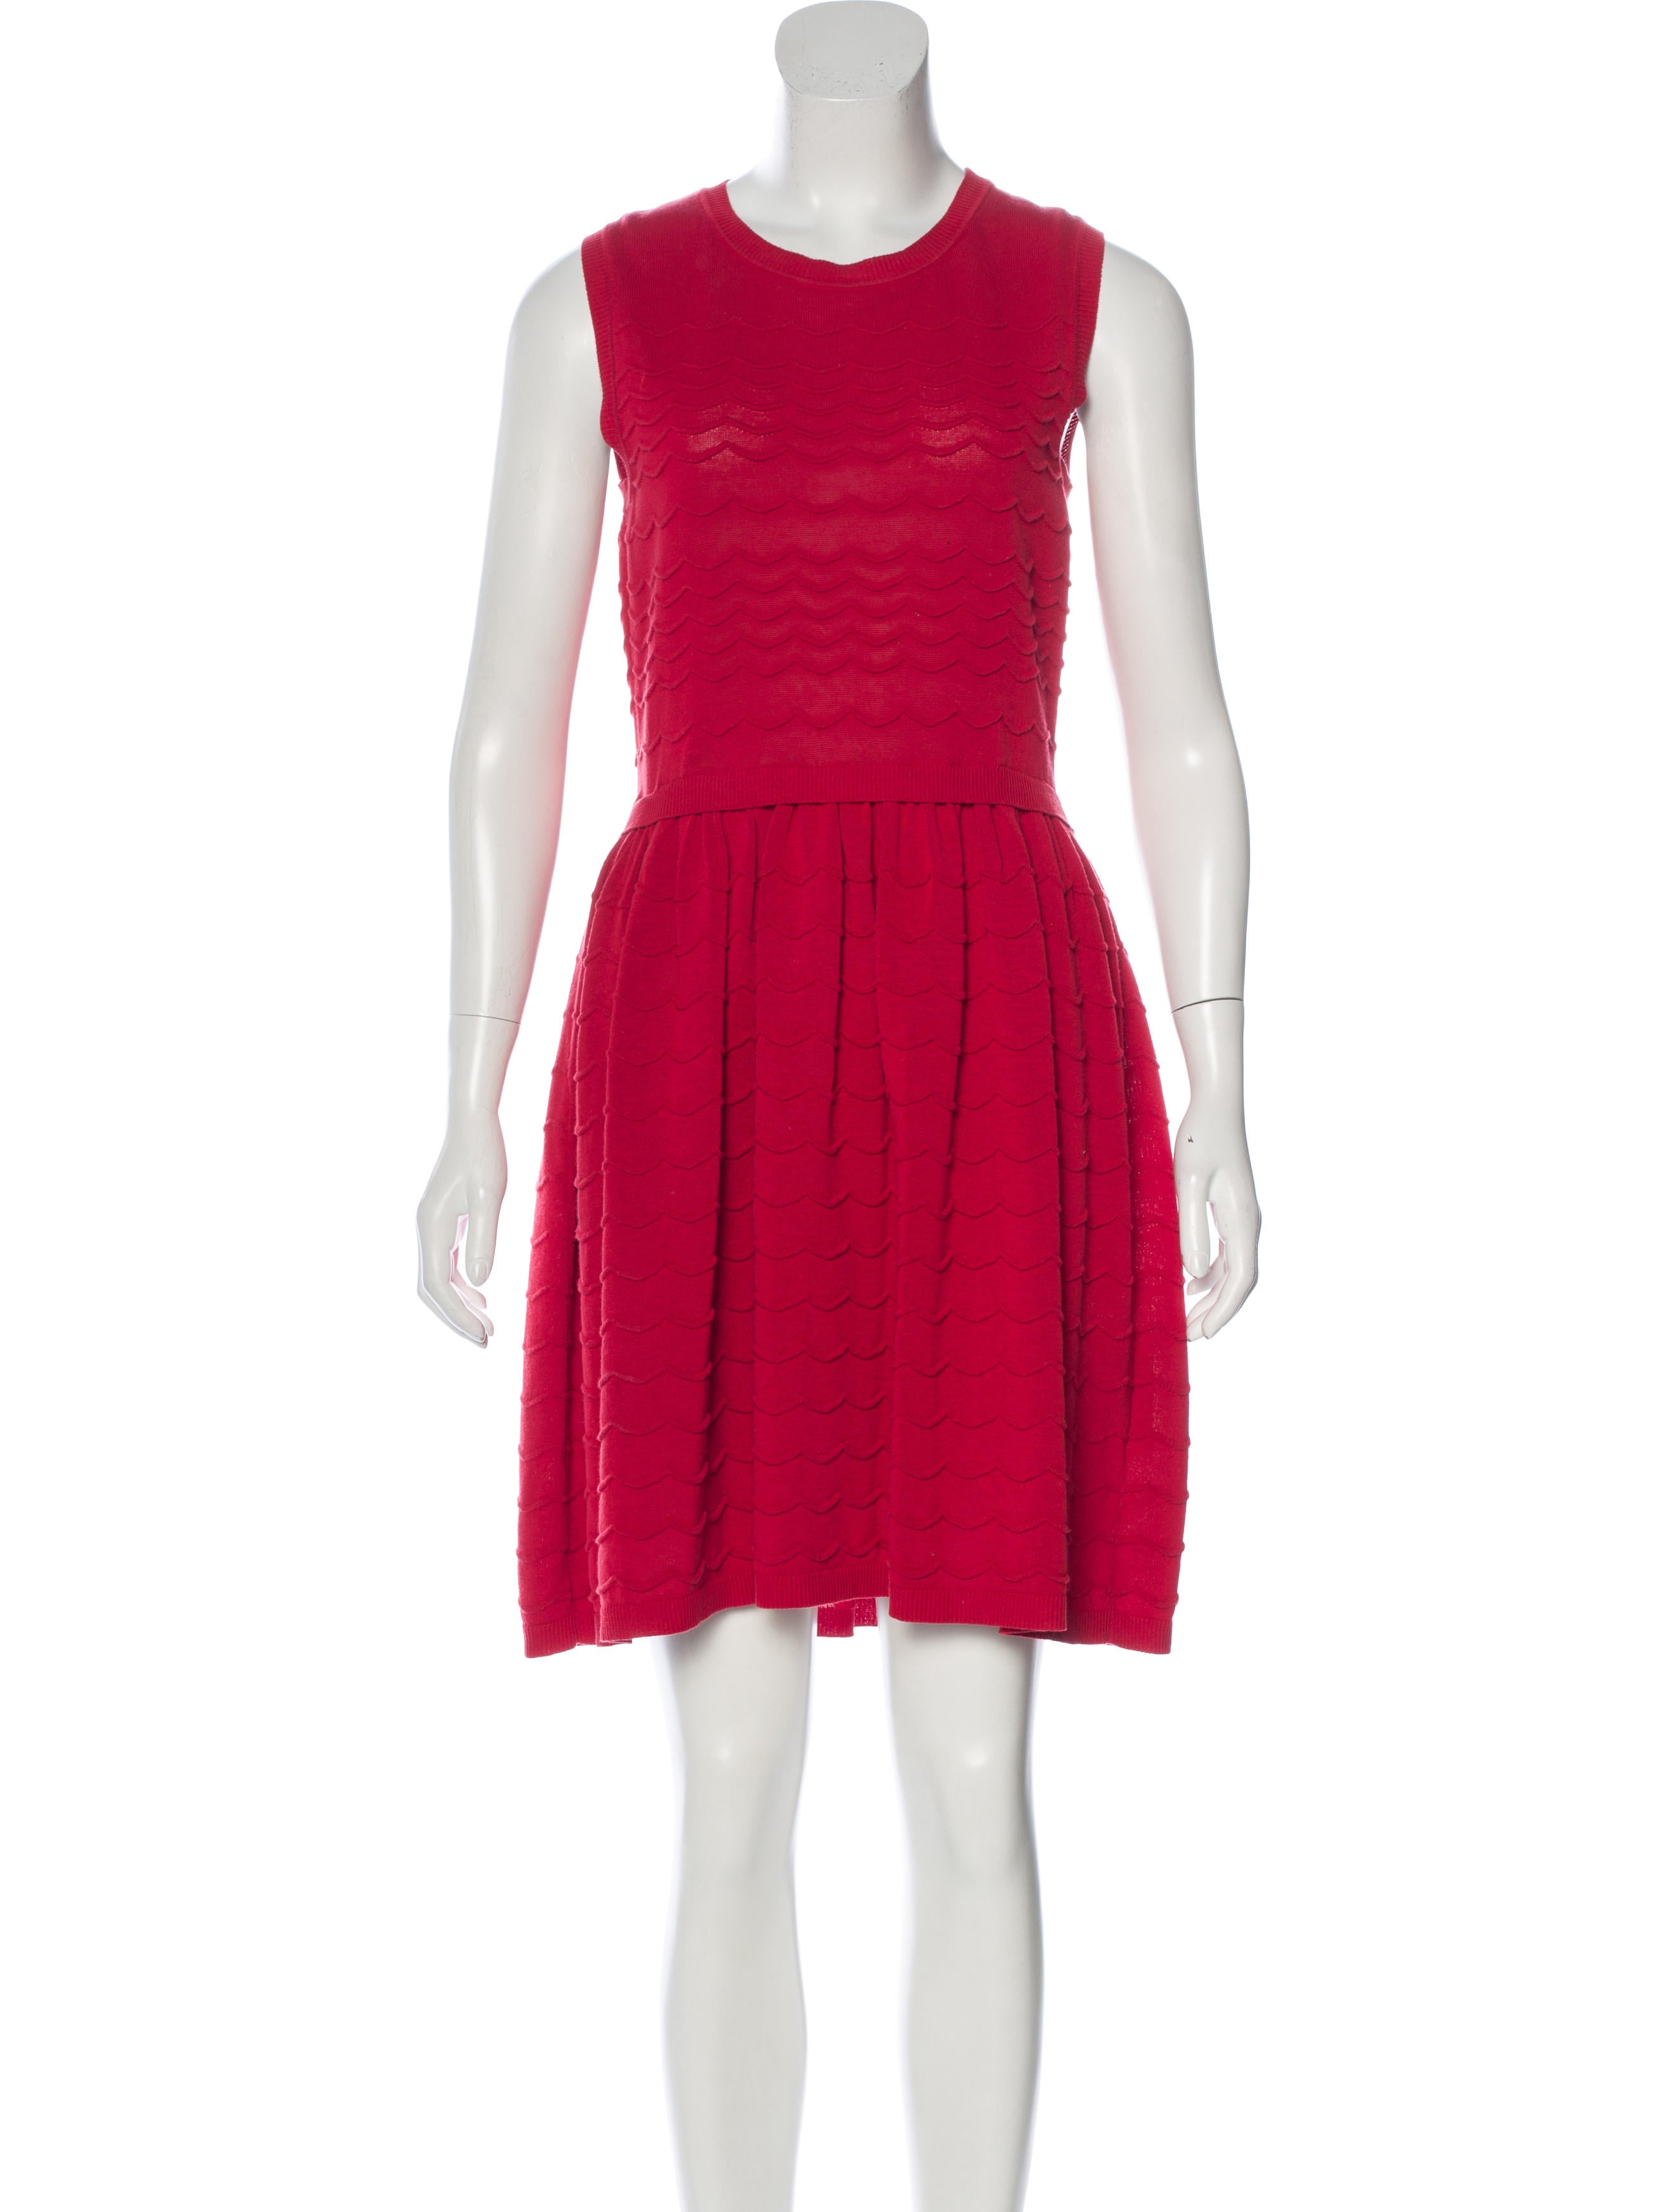 Find great deals on eBay for a line knit dress. Shop with confidence.